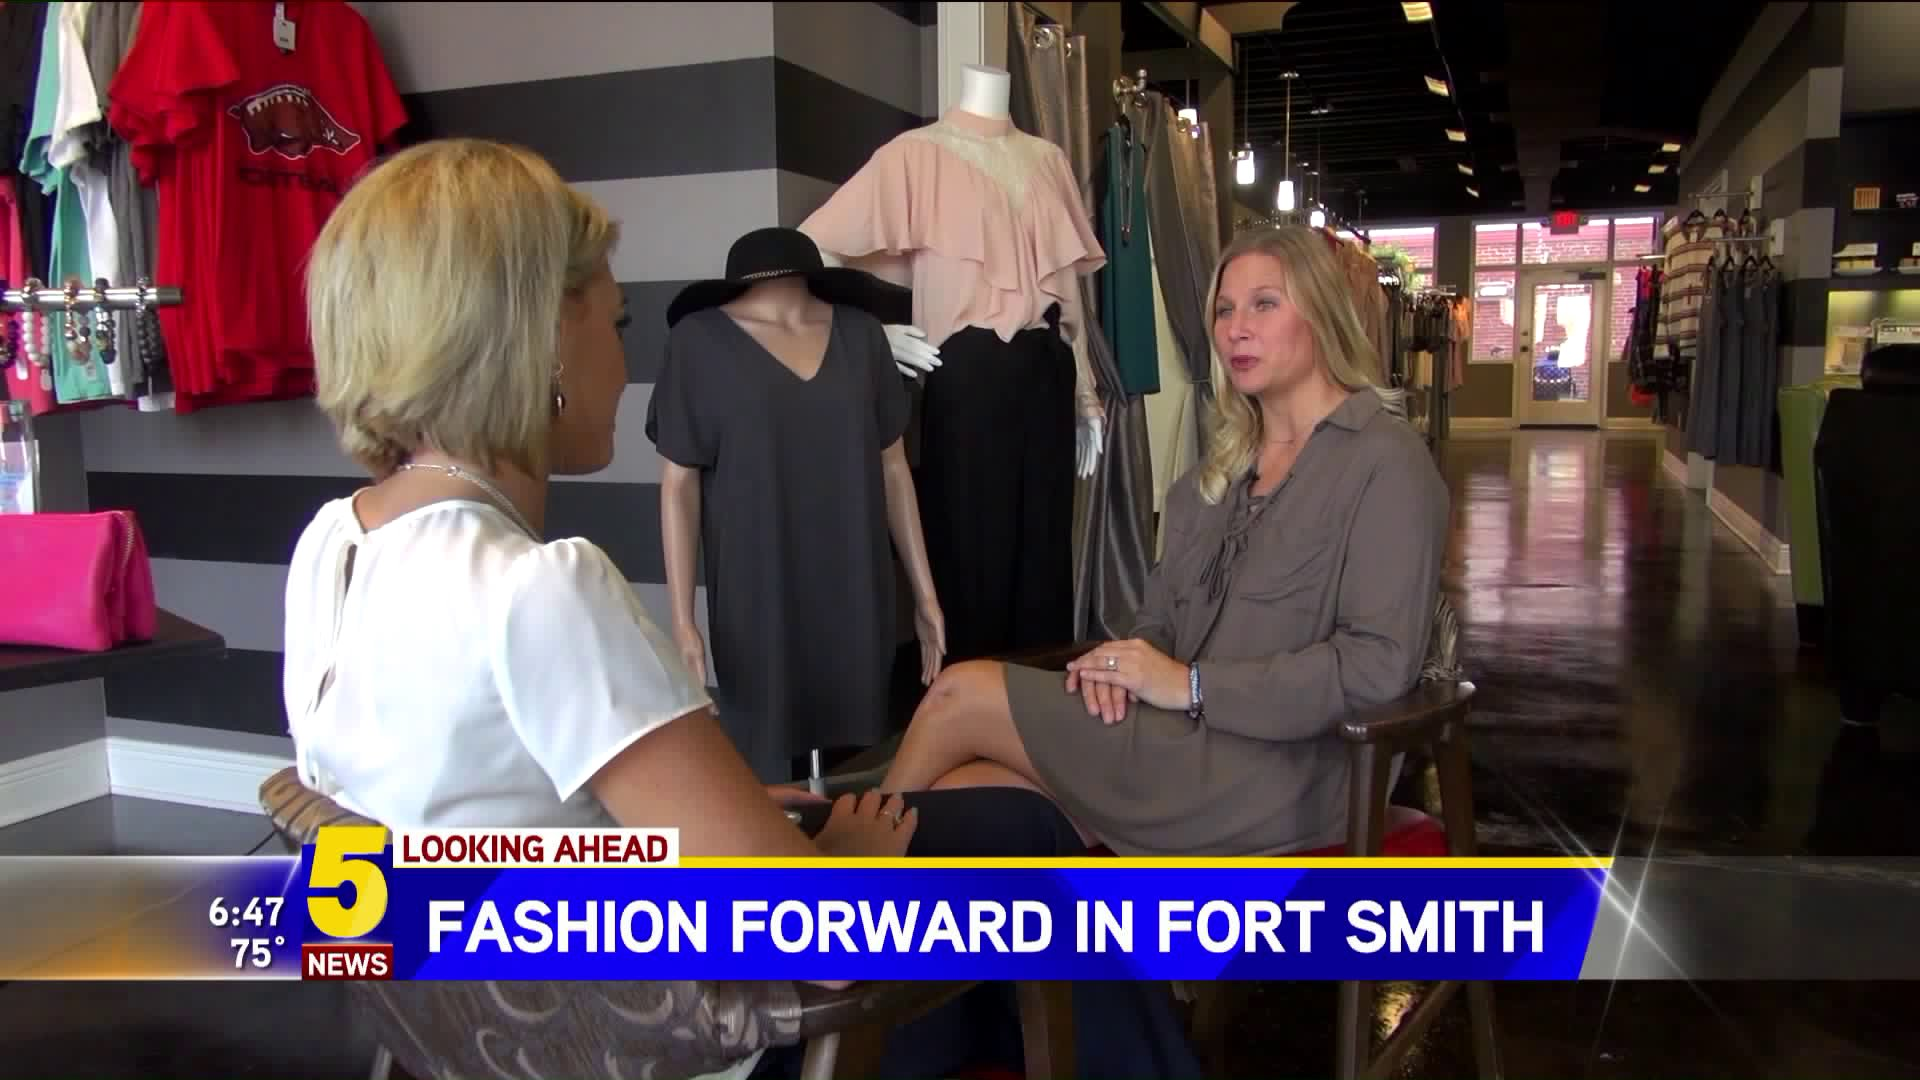 Local business brings fashion forward in Fort Smith, Arkansas.